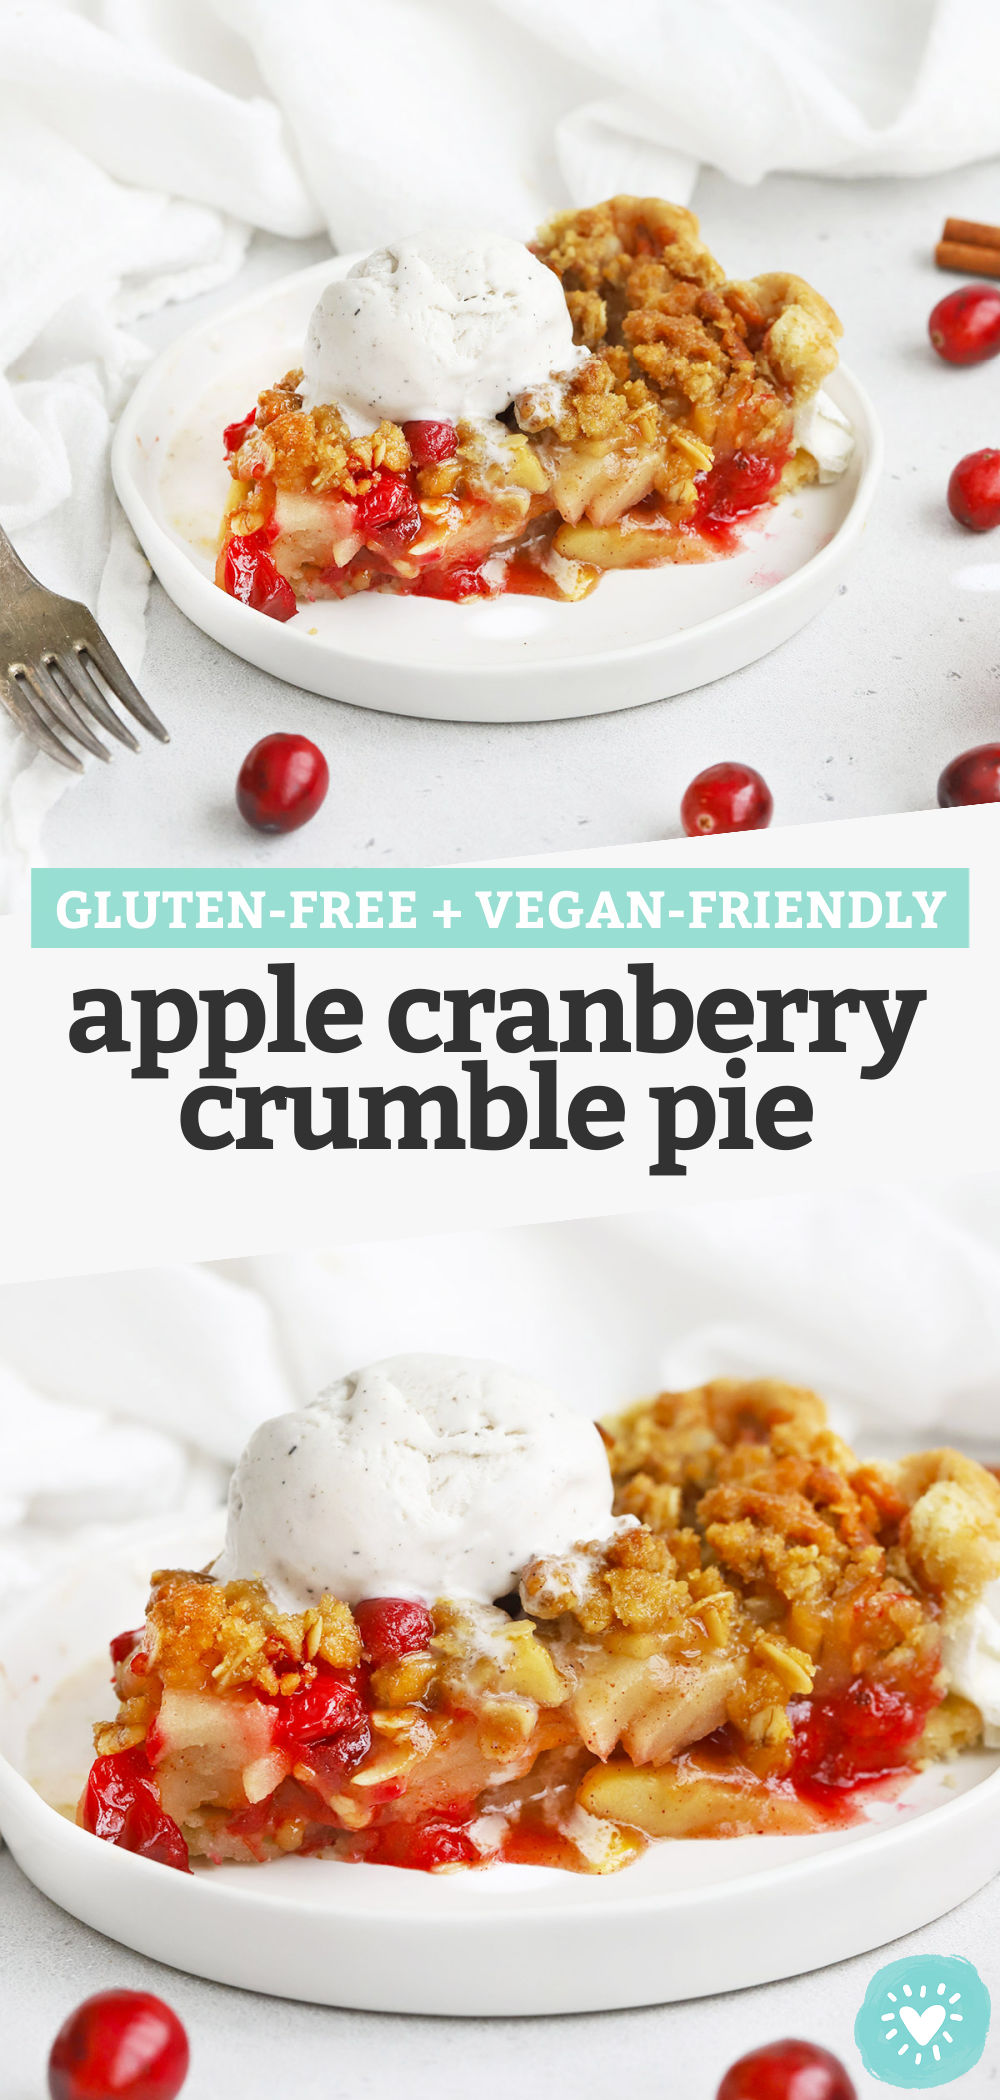 Apple Cranberry Crumble Pie - This Apple Cranberry Pie with crumble topping is what dreams are made of. (Gluten-Free + Vegan-Friendly!) // Cranberry Apple Pie // Fall Pie // Thanksgiving pie // Gluten-free pie // vegan pie #applepie #thanksgiving #pie #applepie